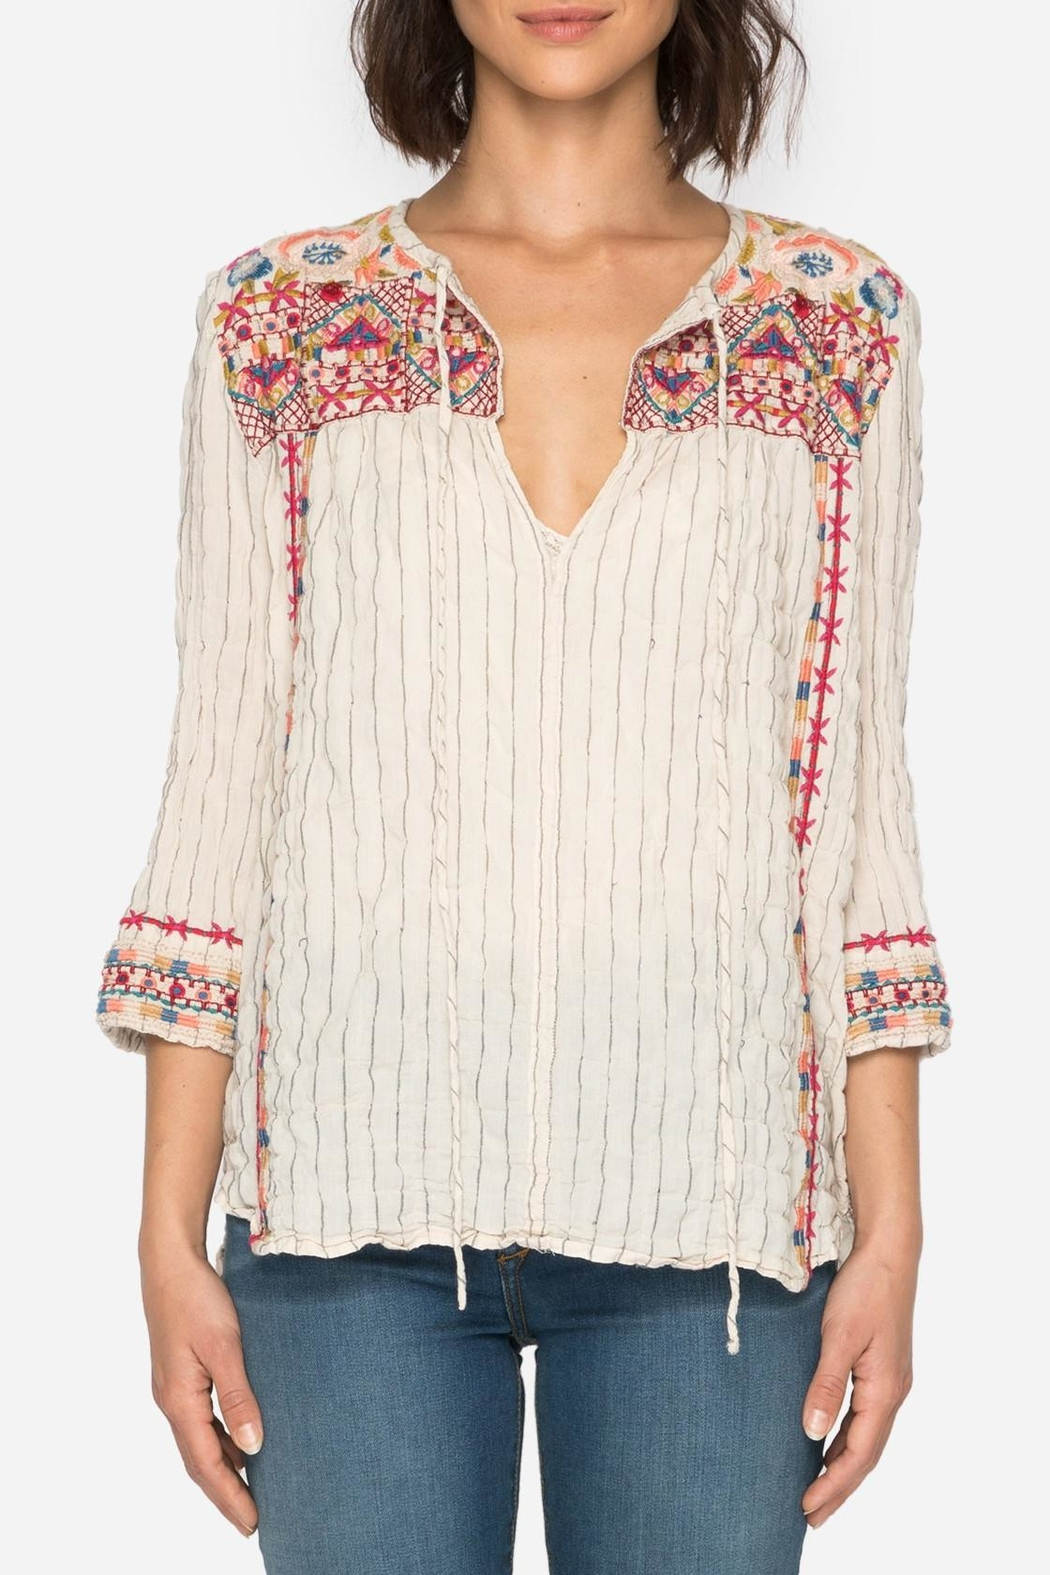 Johnny Was Embroidered Boho Blouse Top - Main Image